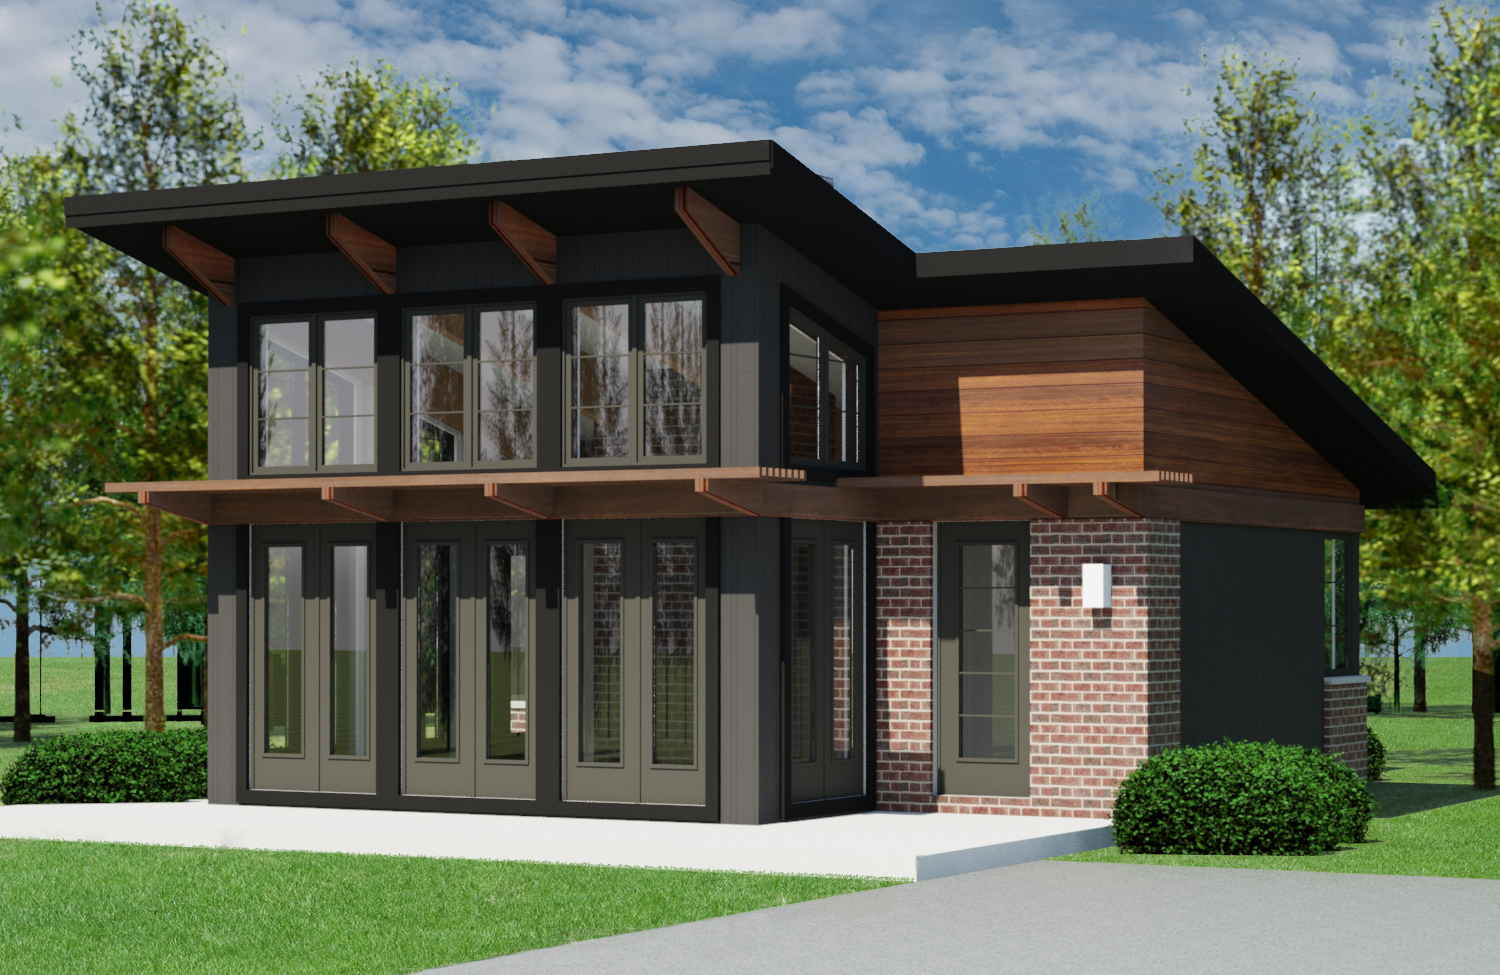 Contemporary butterfly 600 robinson plans for Contemporary modern home designs